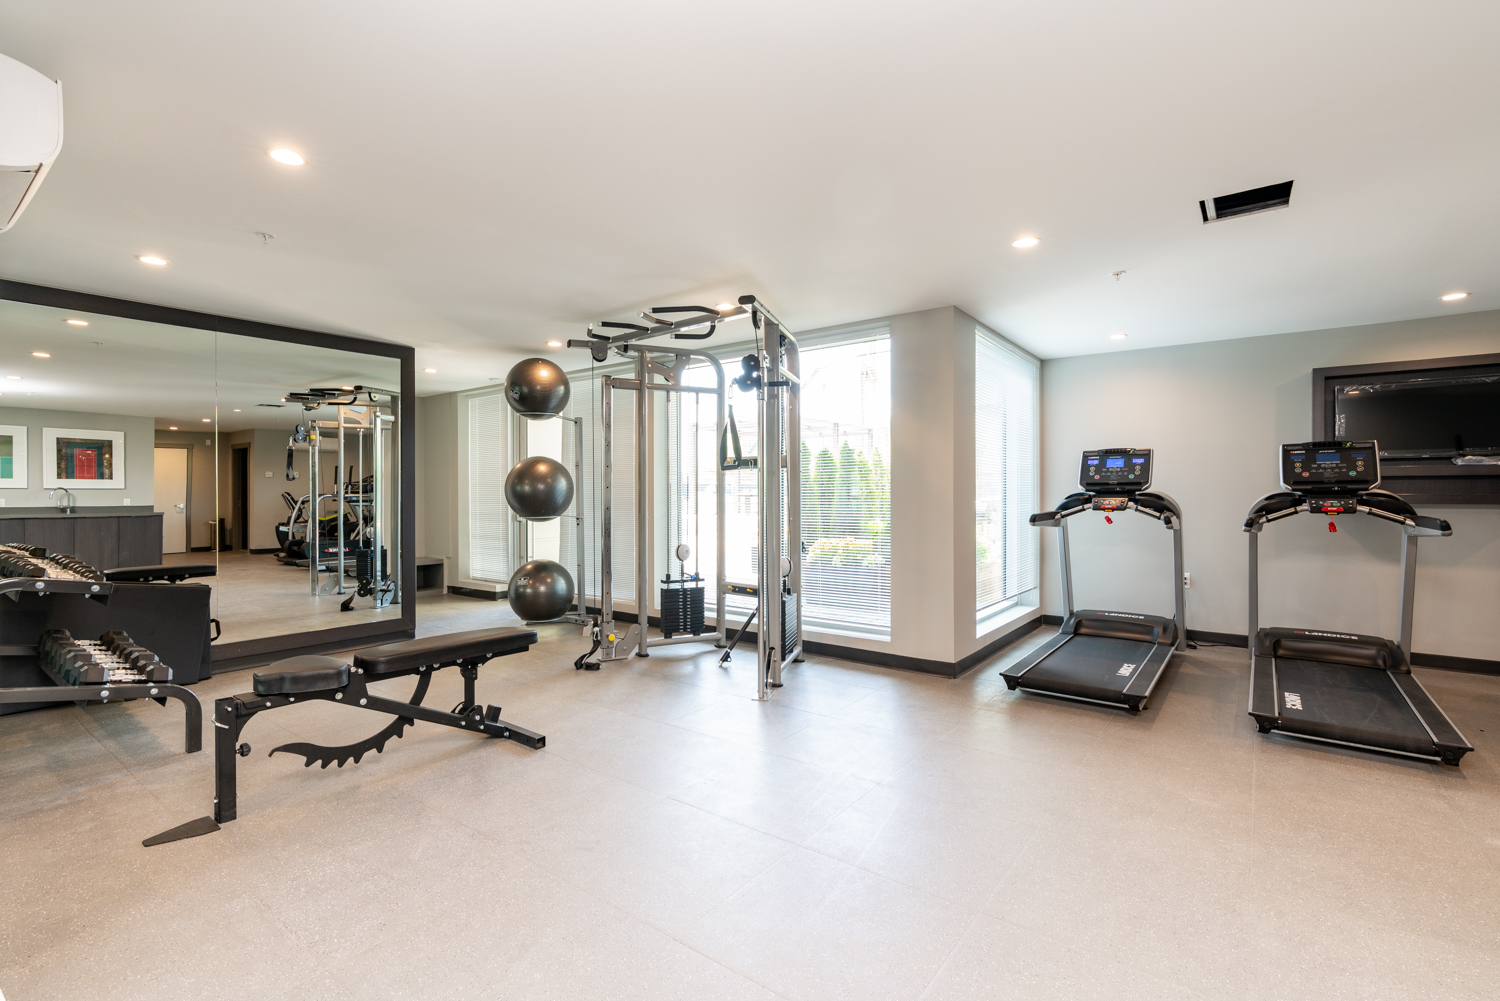 Amenity: Fitness Centre